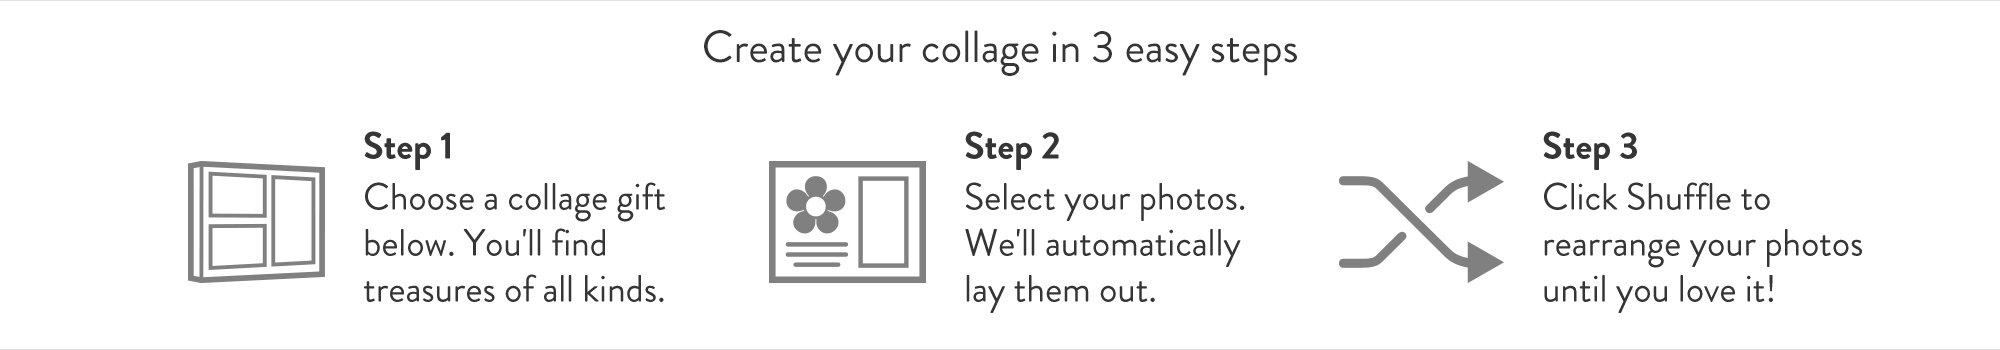 Collage gifts in 3 easy steps